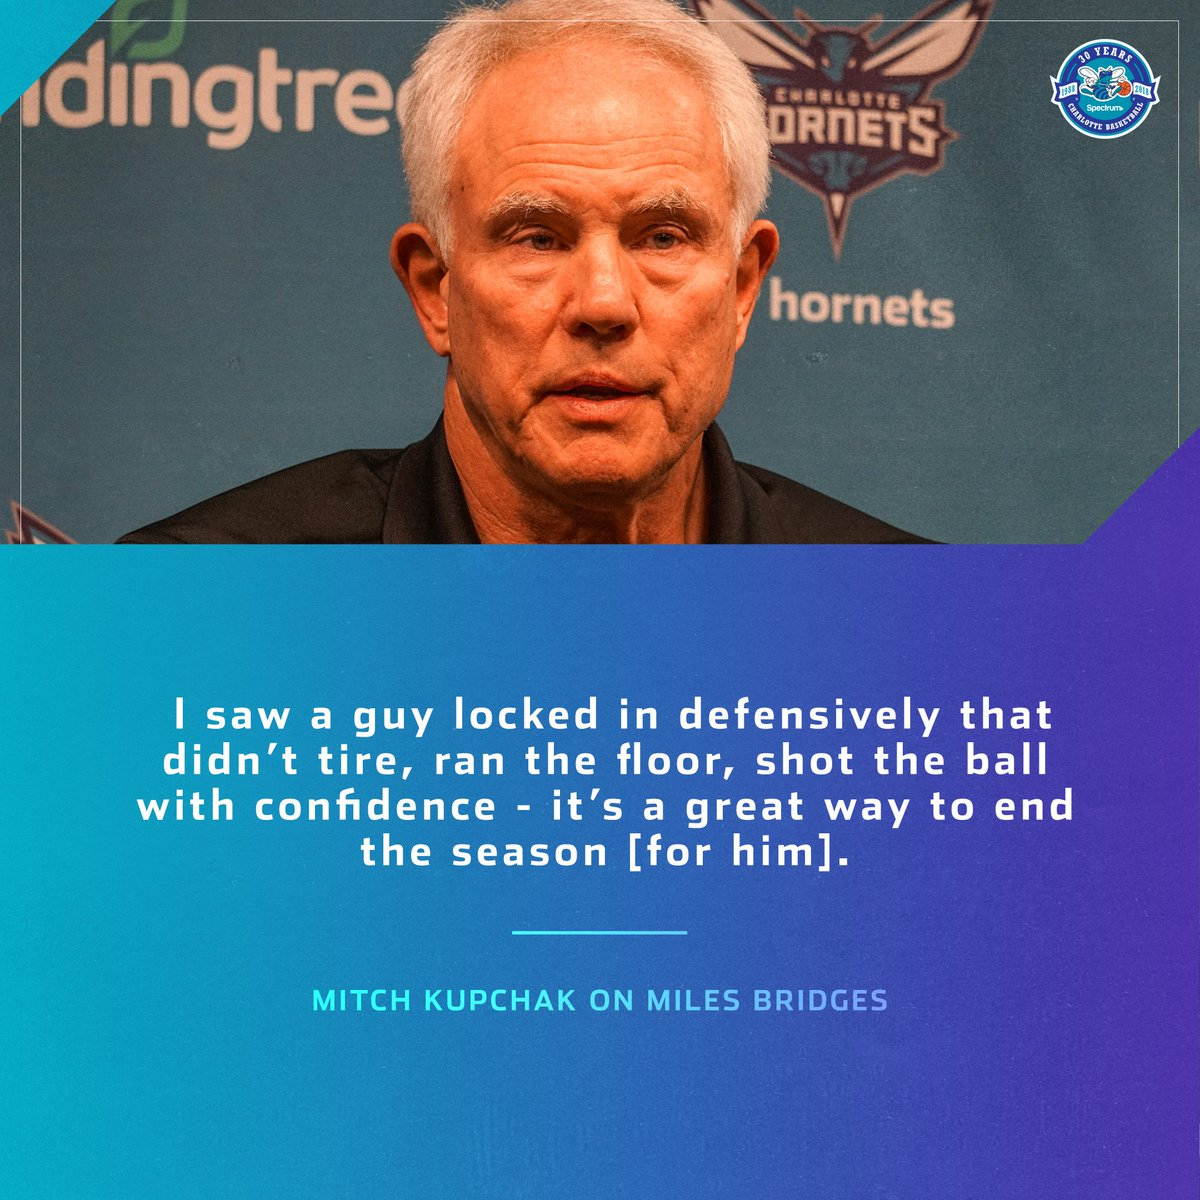 Mitch Kupchak giving praise to rookie Miles Bridges on his play at the end of the season. #hornets30